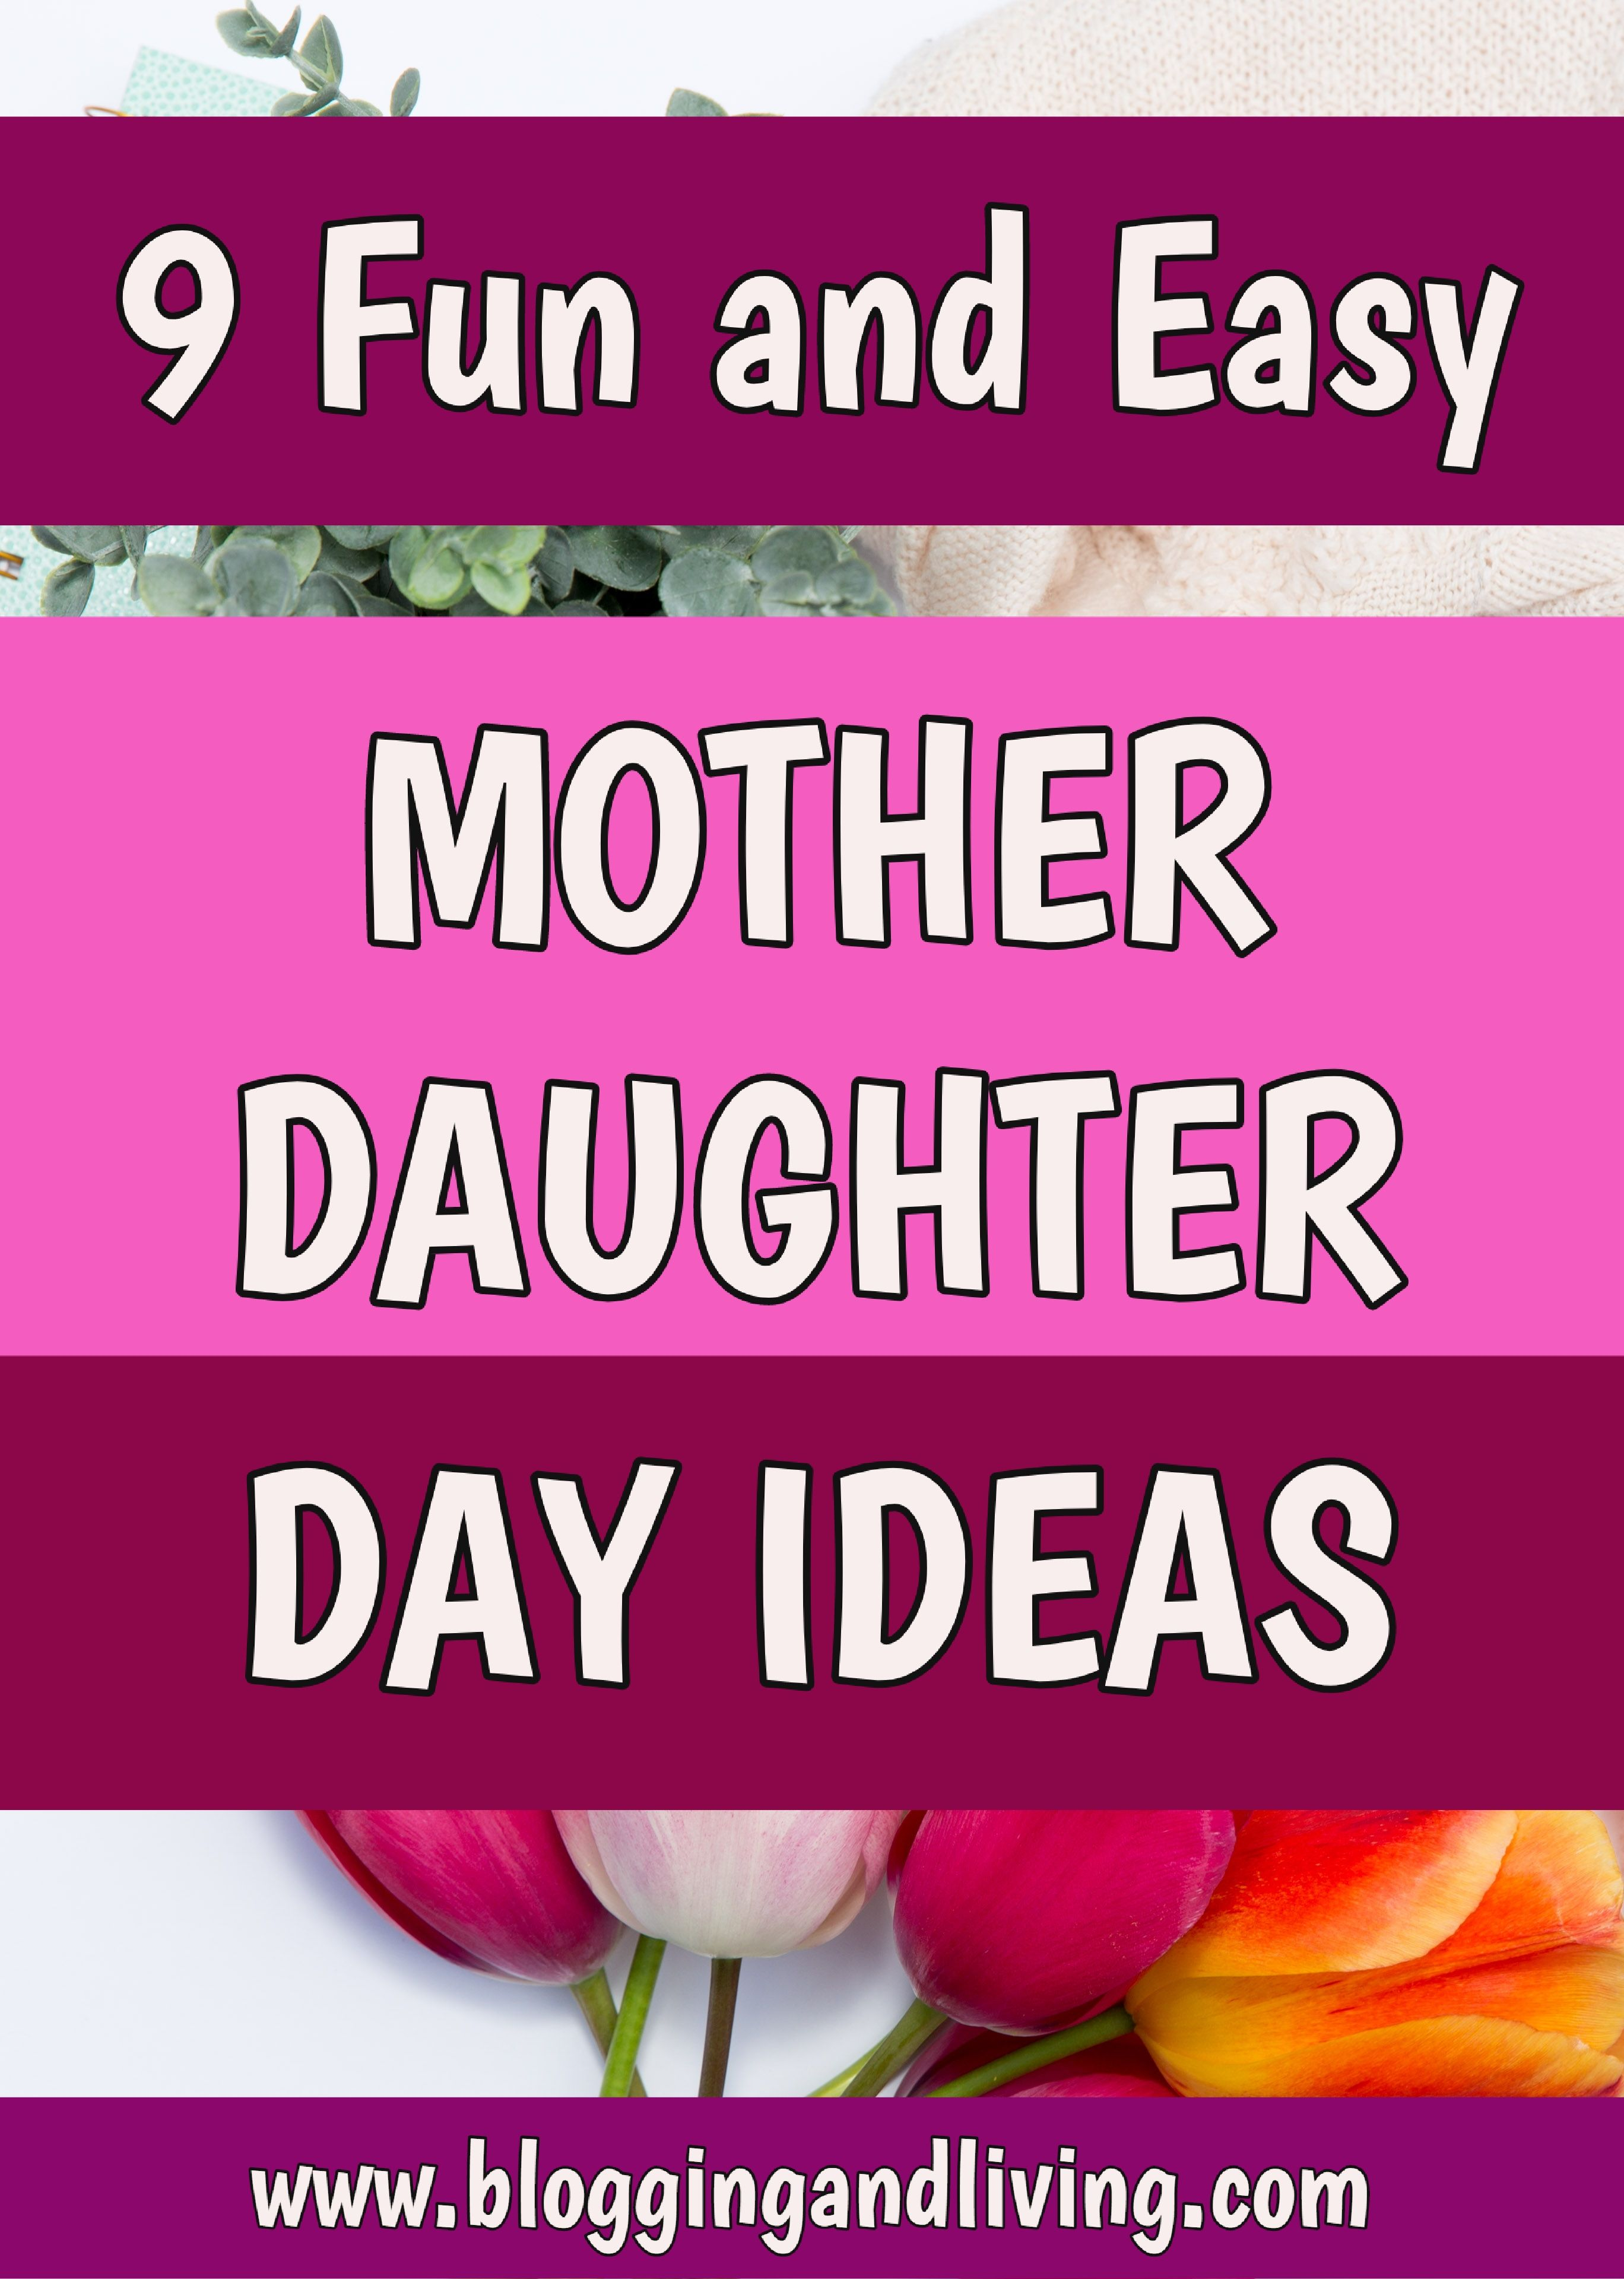 9 Fun Easy Mother Daughter Day Ideas Great For Mothers Day Moms Birthdays In 2020 Daughters Day Daughter Mother